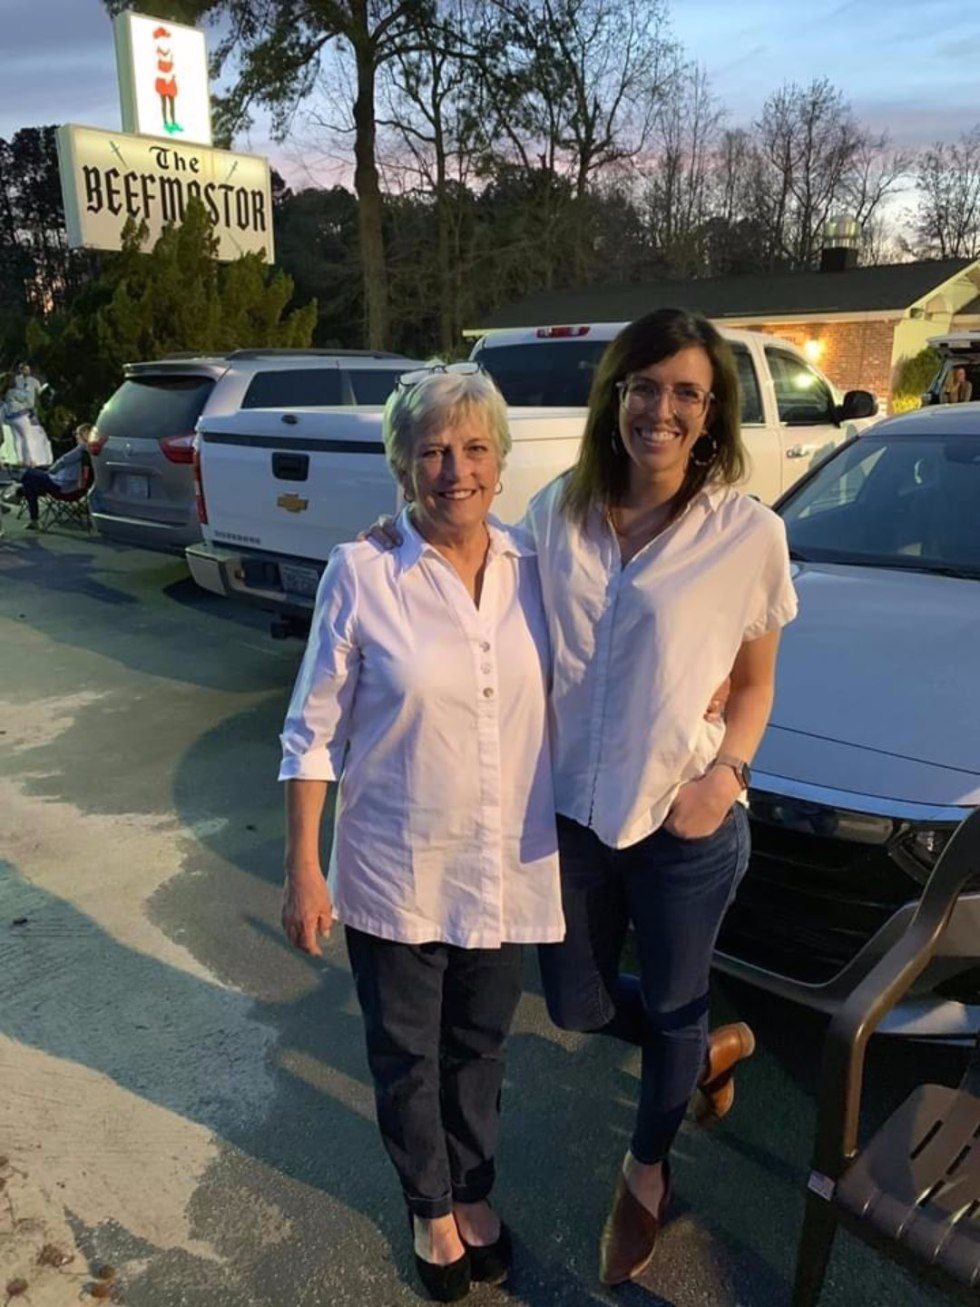 Mother's Day Gift Ideas for the Homebound Mom - I'm Fixin' To - @mbg0112 | Thoughtful Mother's Day Gift Ideas by popular N.C. lifestyle blog, I'm Fixin' To: image of a mom and daughter standing outside The Beefmastor restaurant.